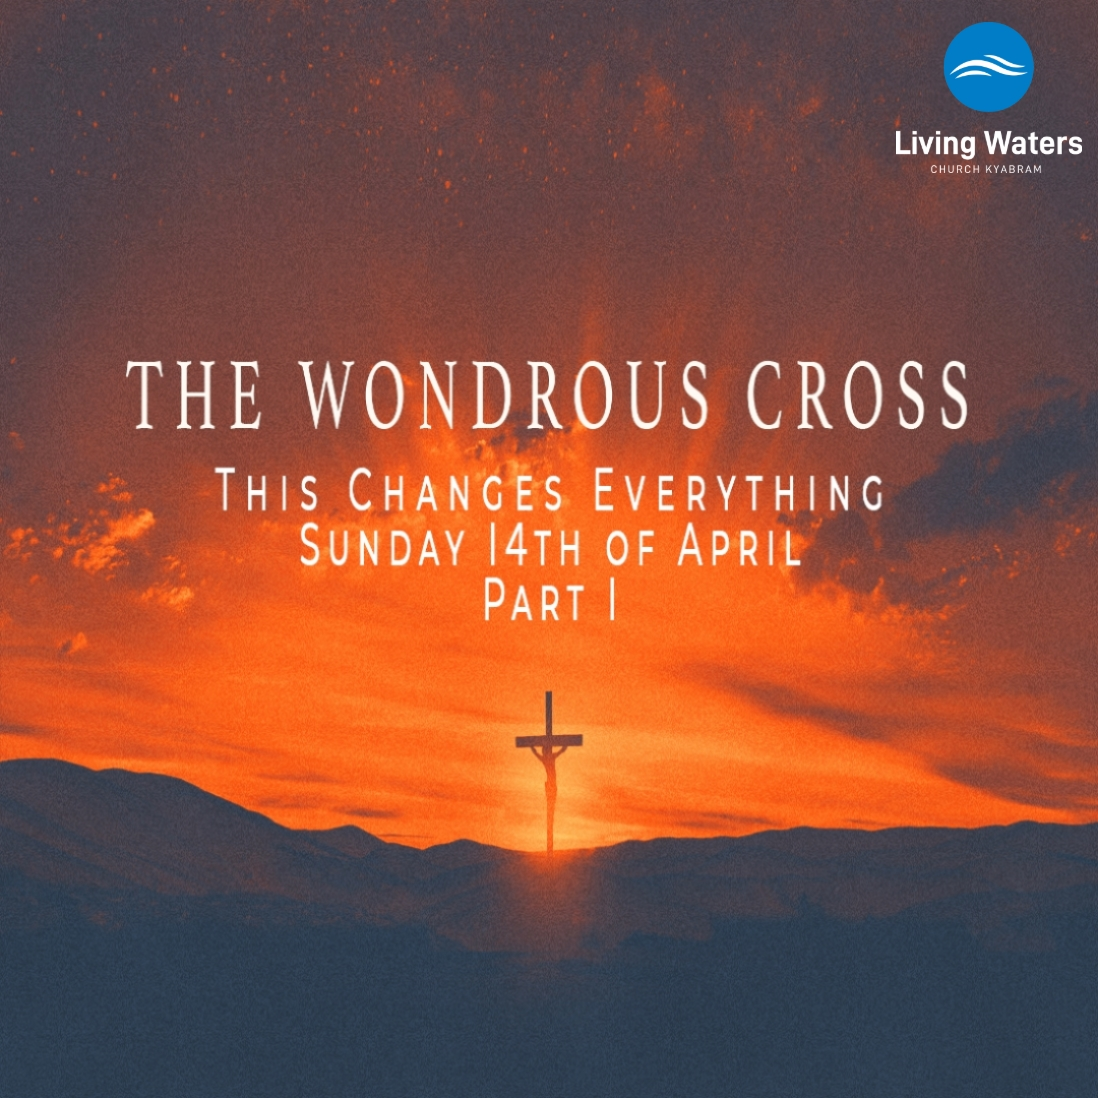 Every Place – Easter 2019 Part 1 The Wondrous Cross